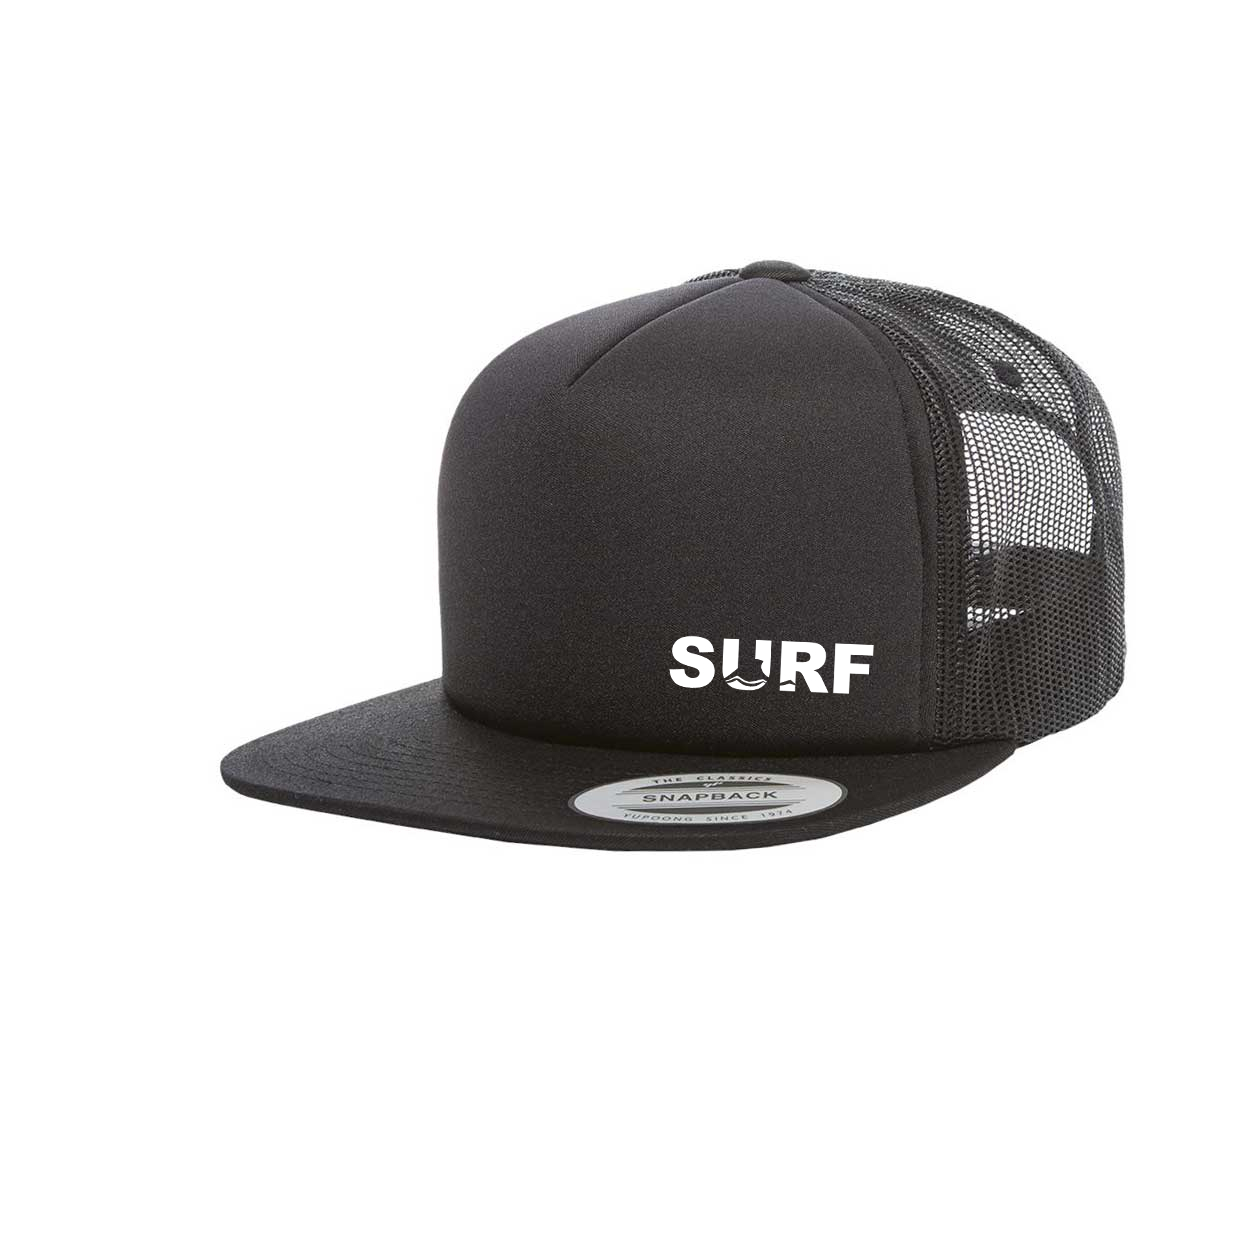 Surf Wave Logo Night Out Premium Foam Flat Brim Snapback Hat Black (White Logo)